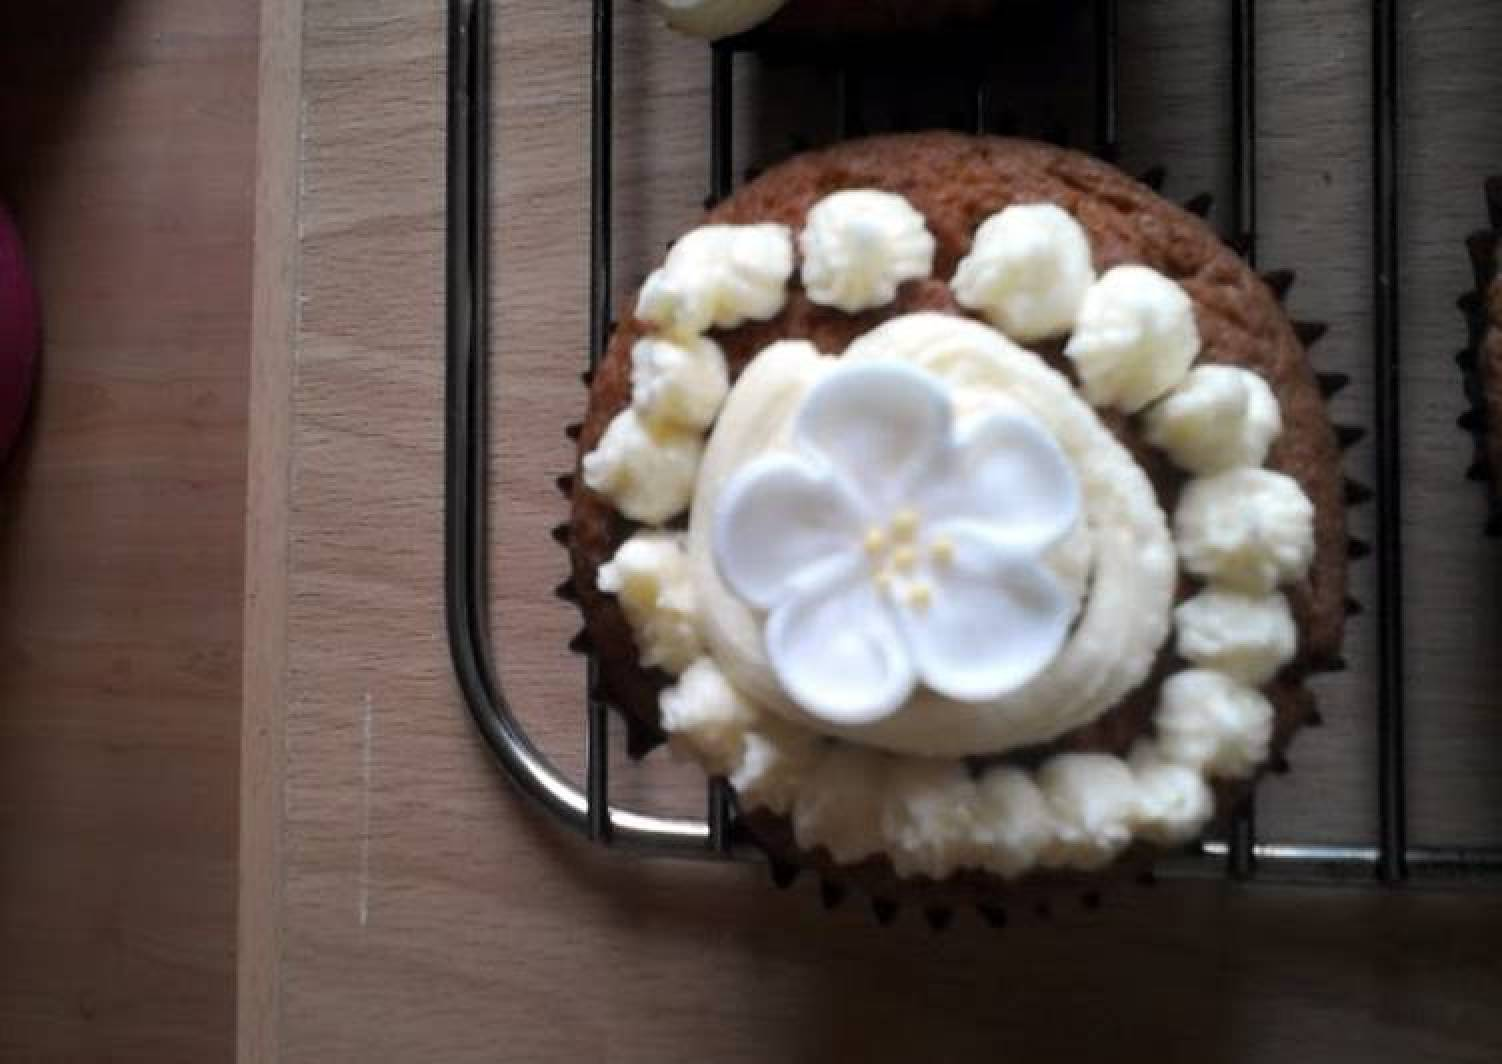 yum yum cupcakes from out of this uh…fridge